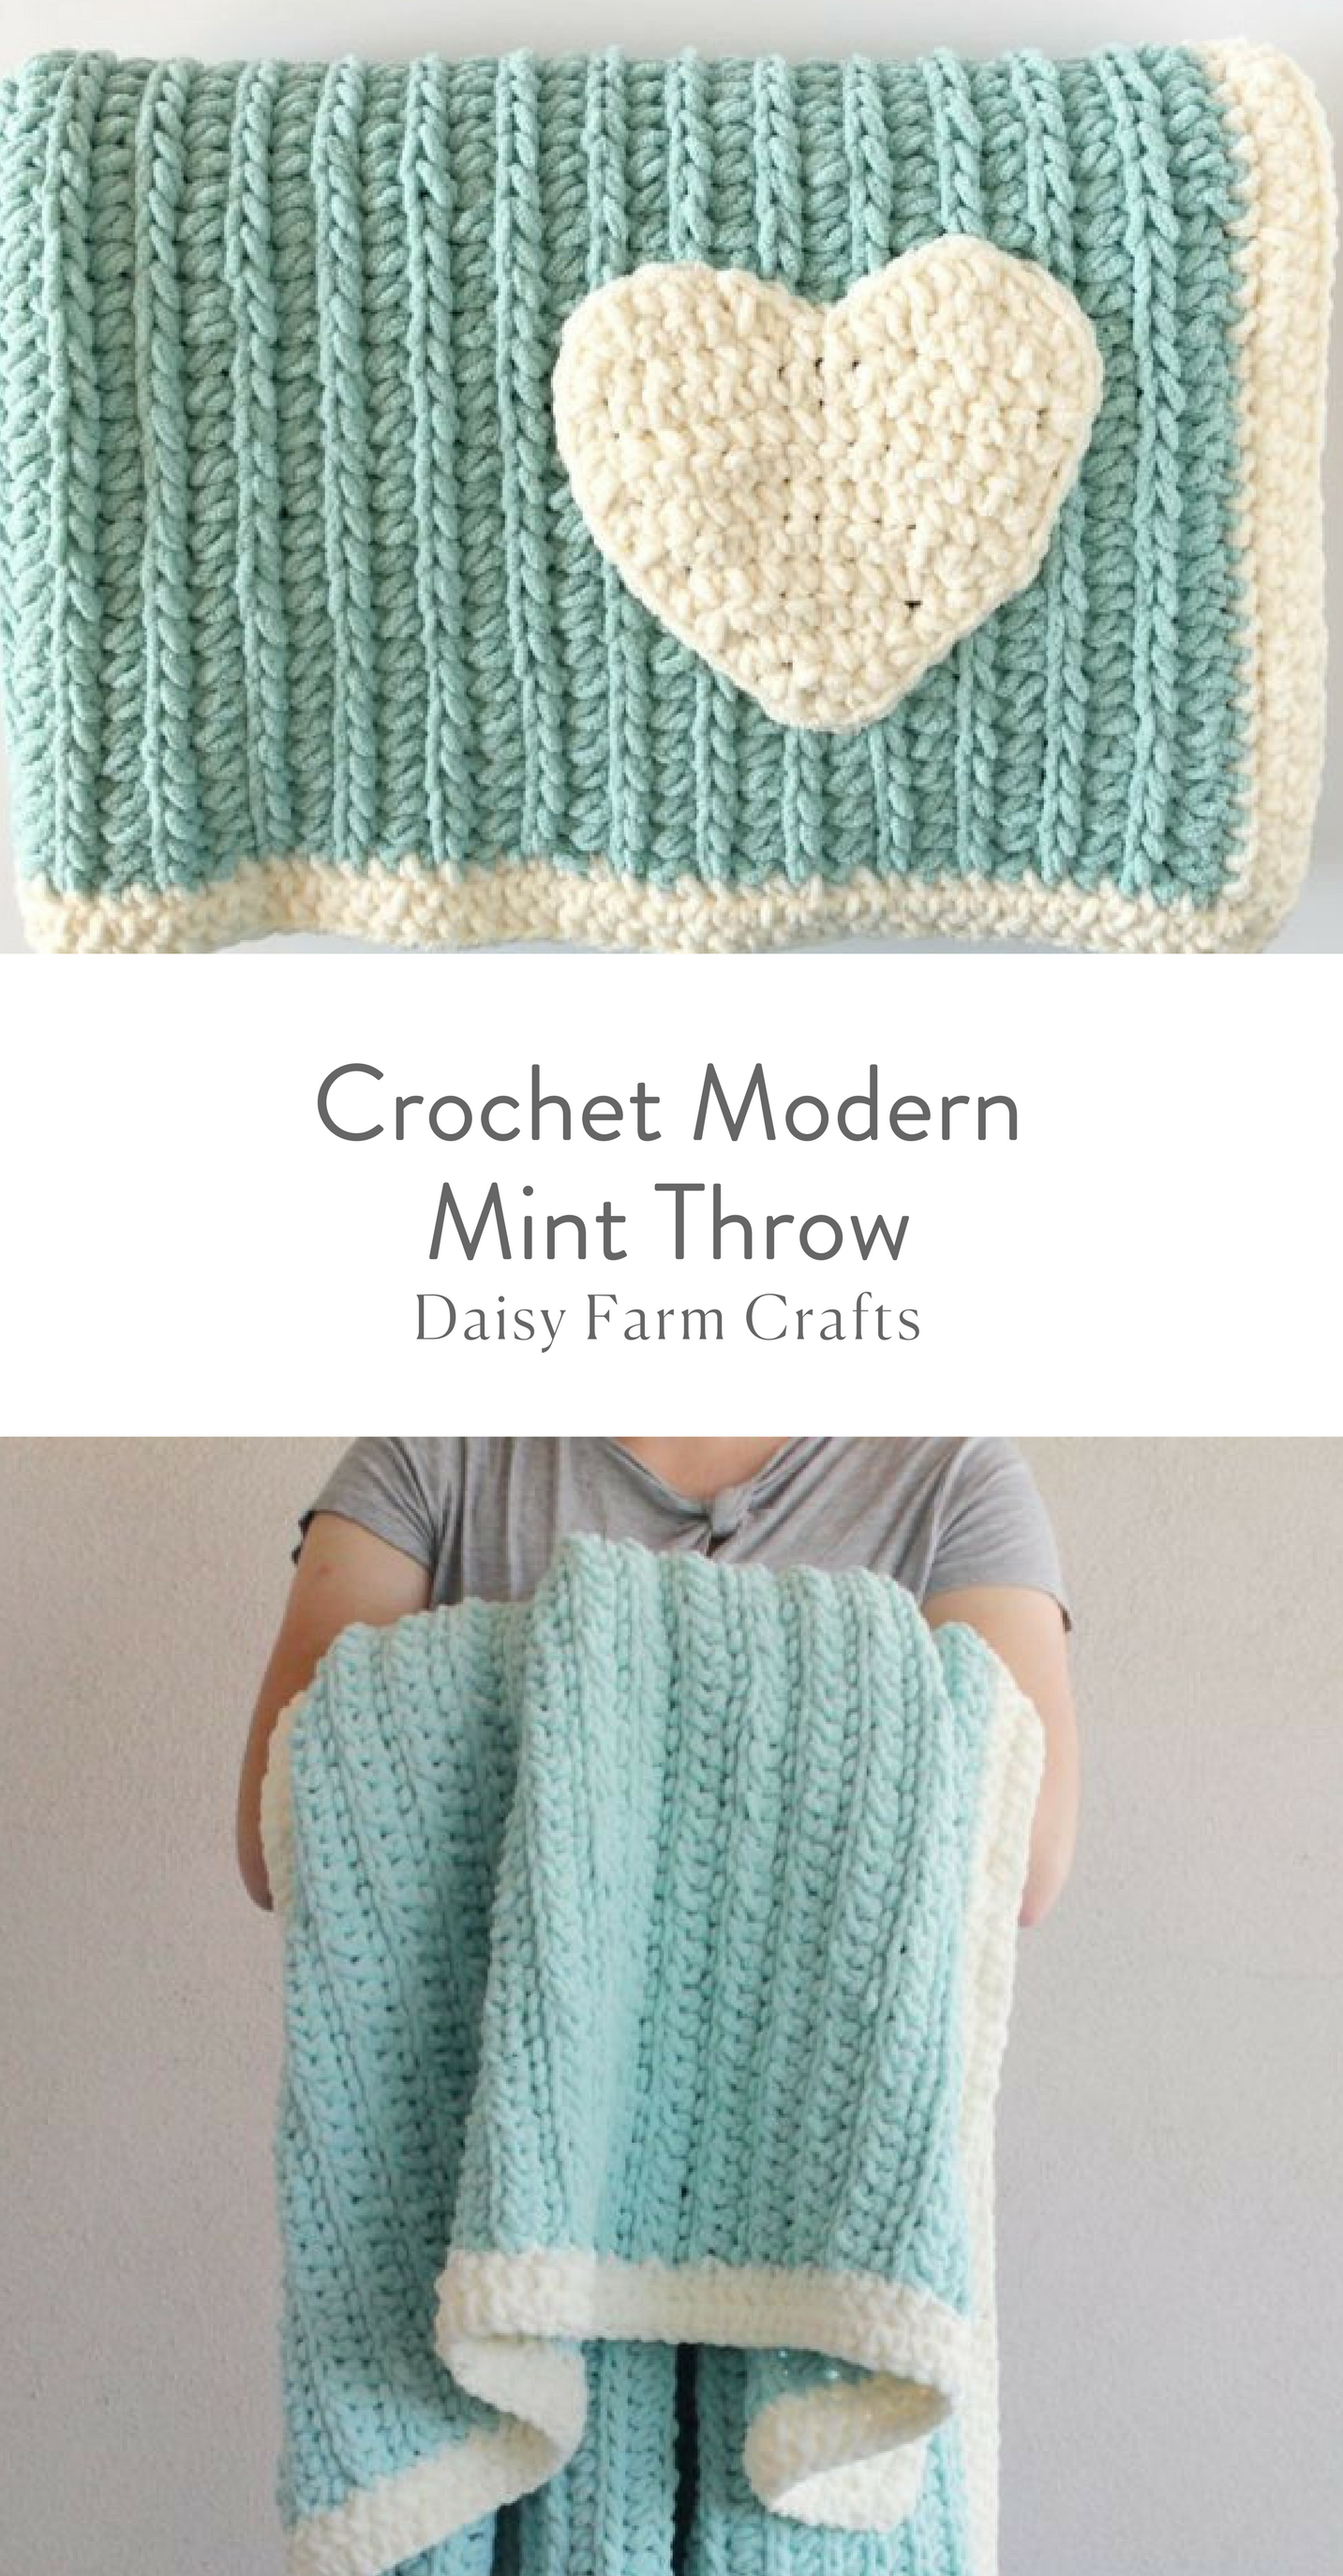 Free Pattern - Crochet Modern Mint Throw | Knit/Crochet | Pinterest